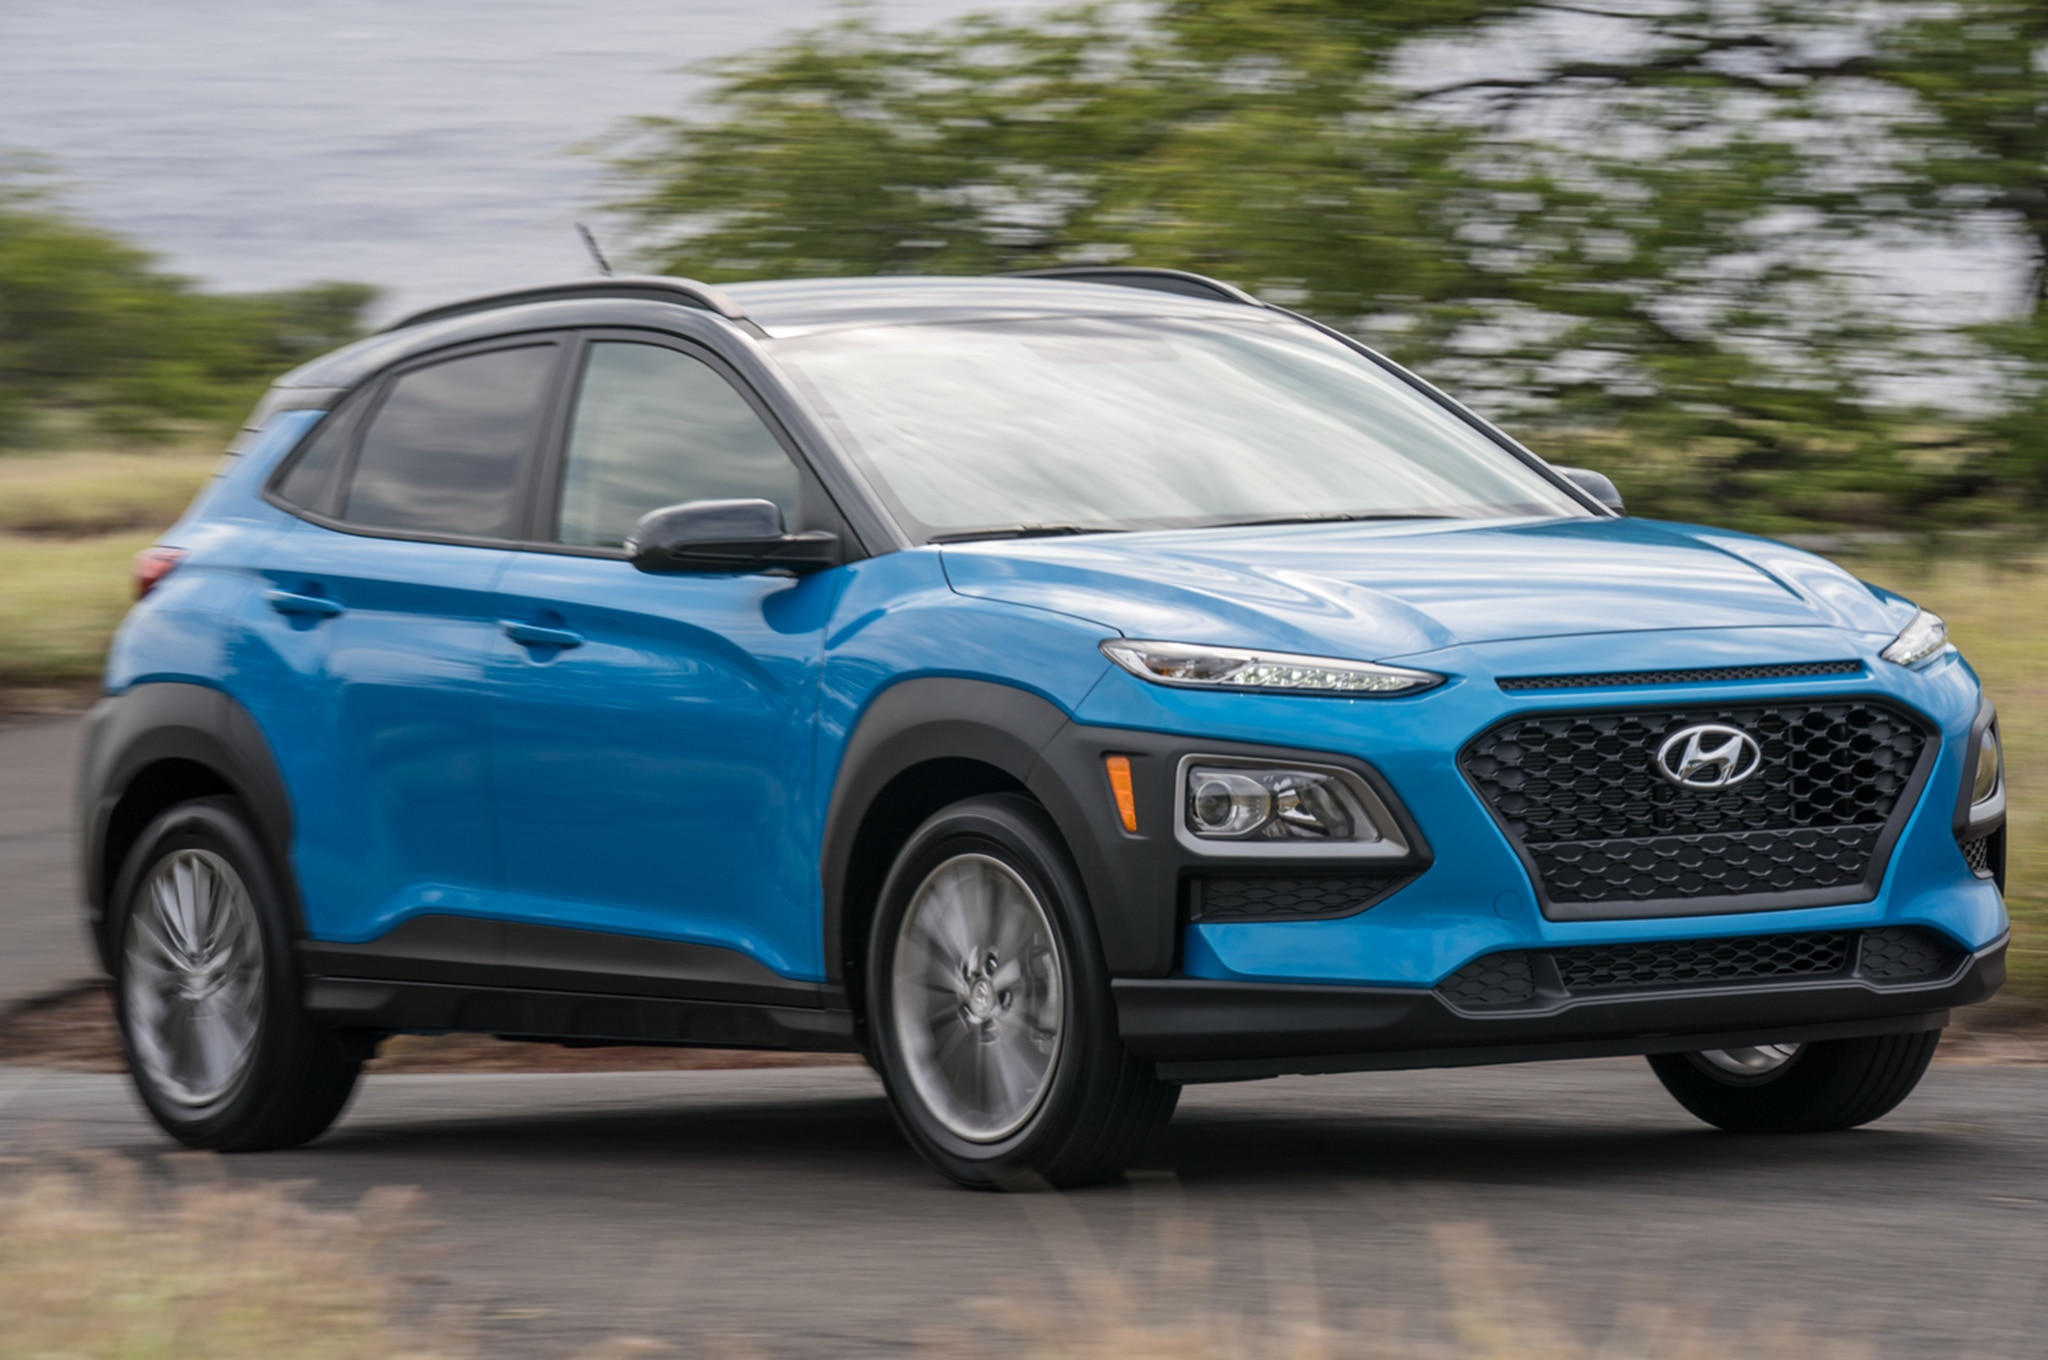 hyundai reportedly developing a sport tuned kona n suv with 247 hp automobile magazine. Black Bedroom Furniture Sets. Home Design Ideas